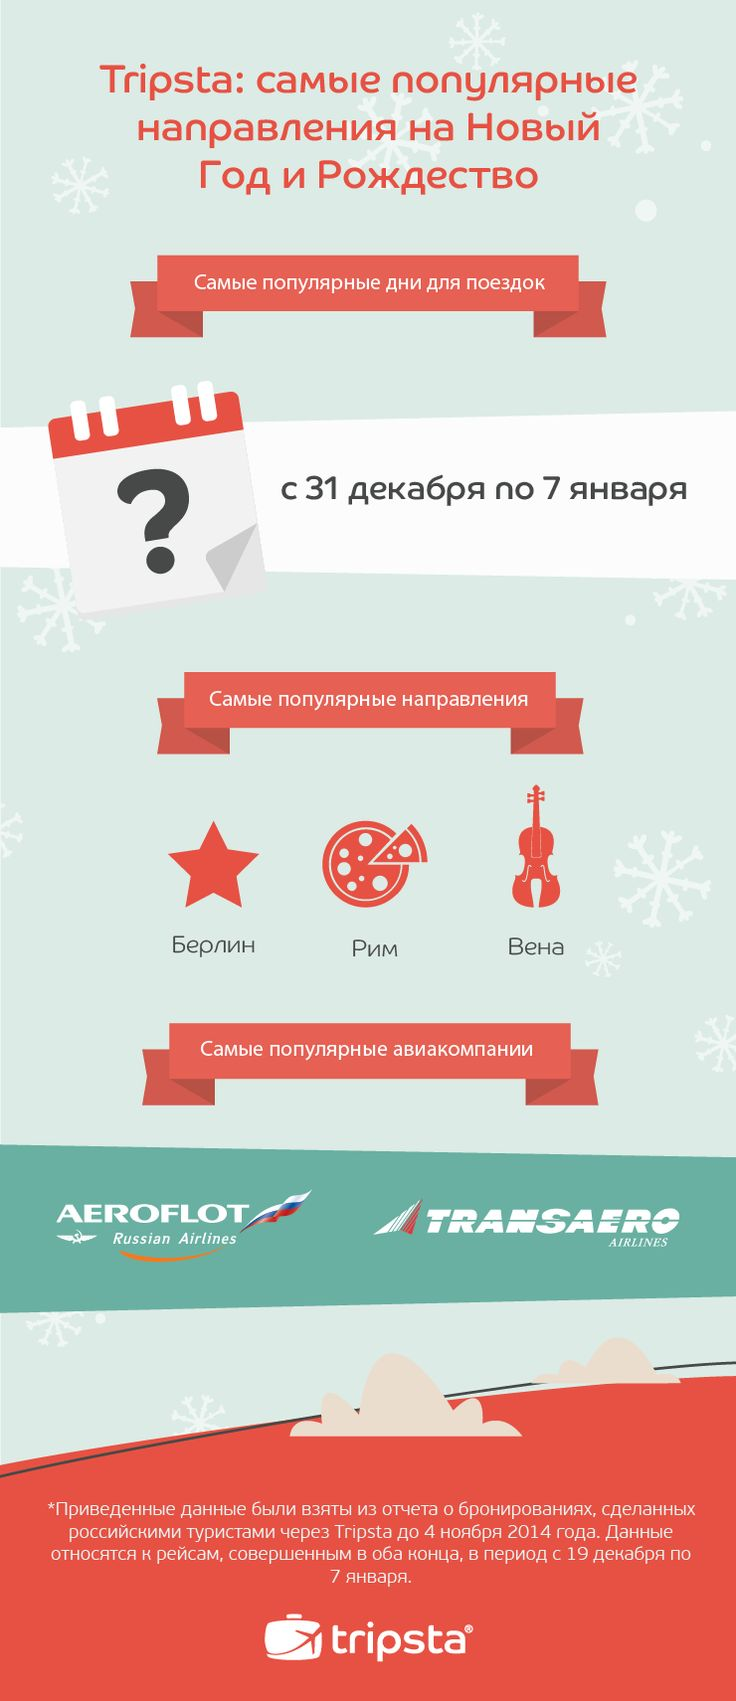 Xmas Travel Trends 2014 for Russian Market #tripsta #infographic #travel #trends #data